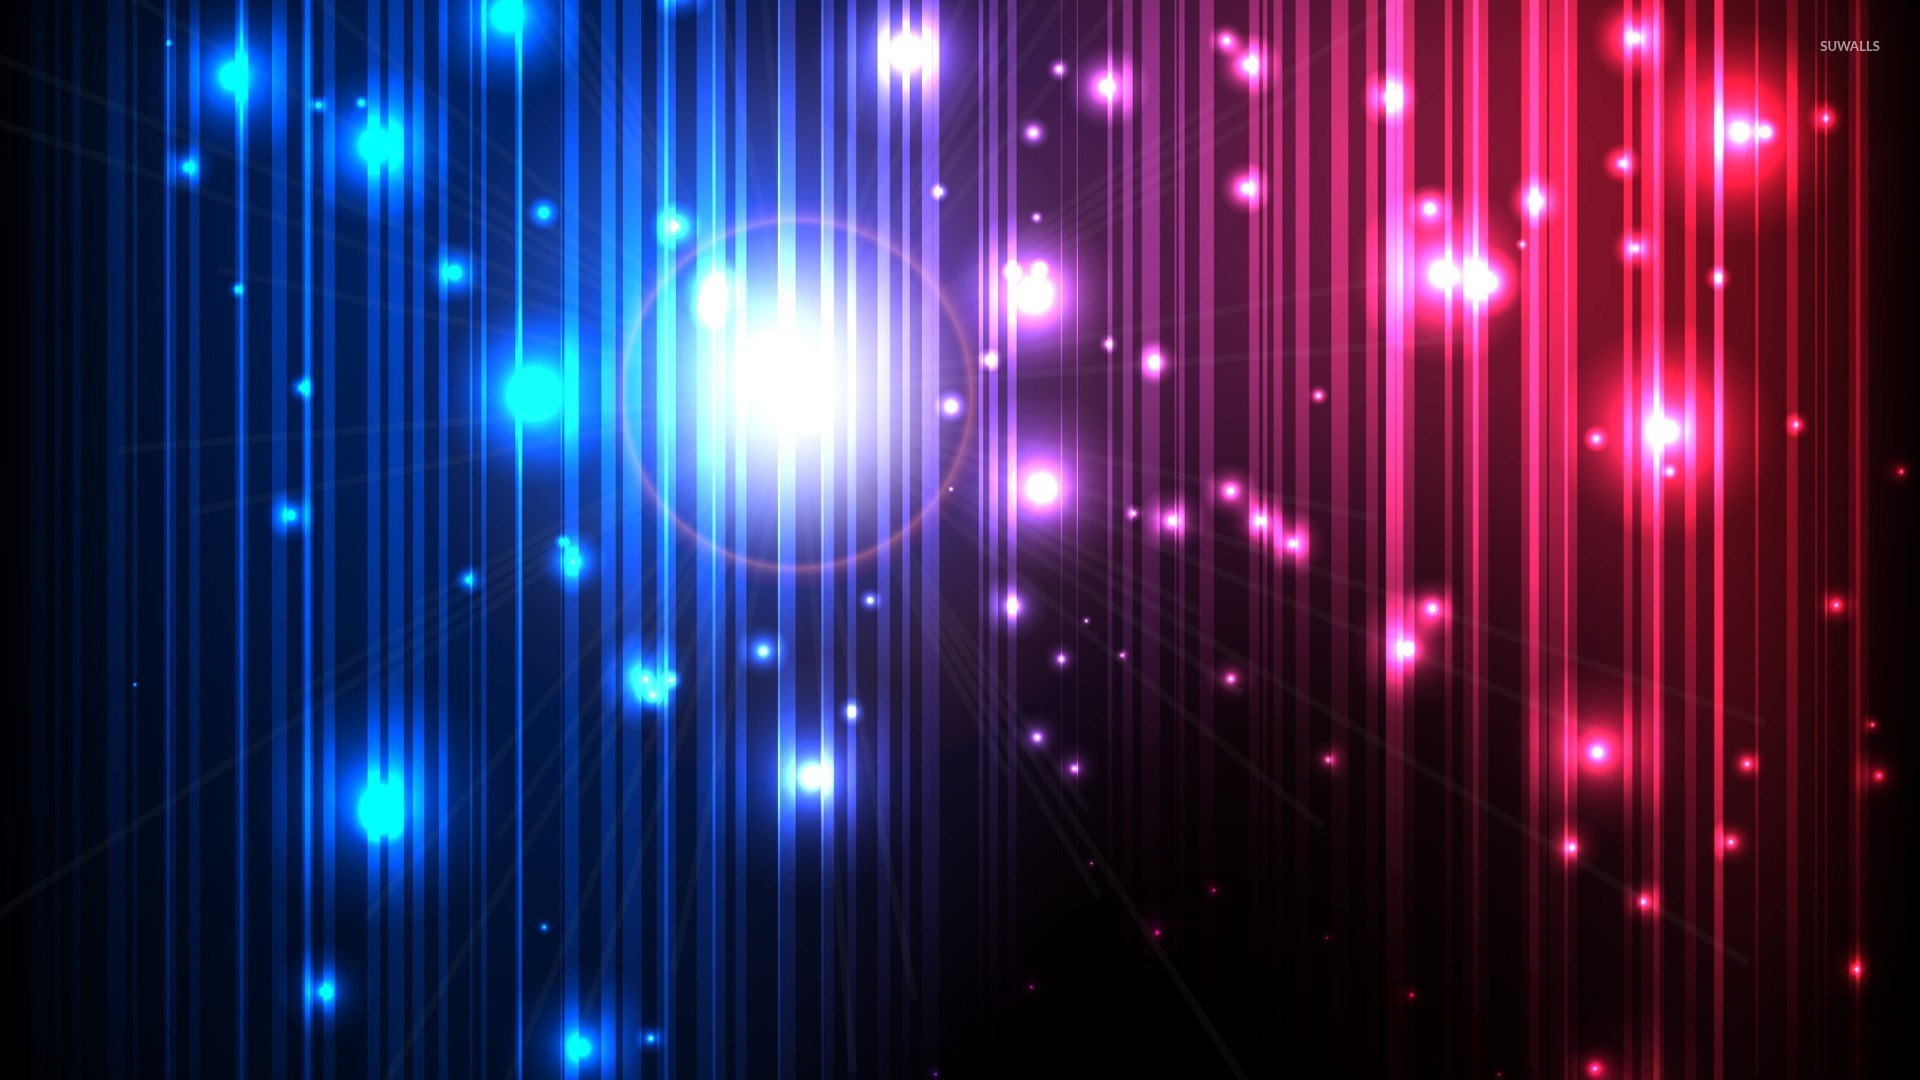 Sparkles On Glowing Lines Wallpaper Abstract Wallpapers 20254